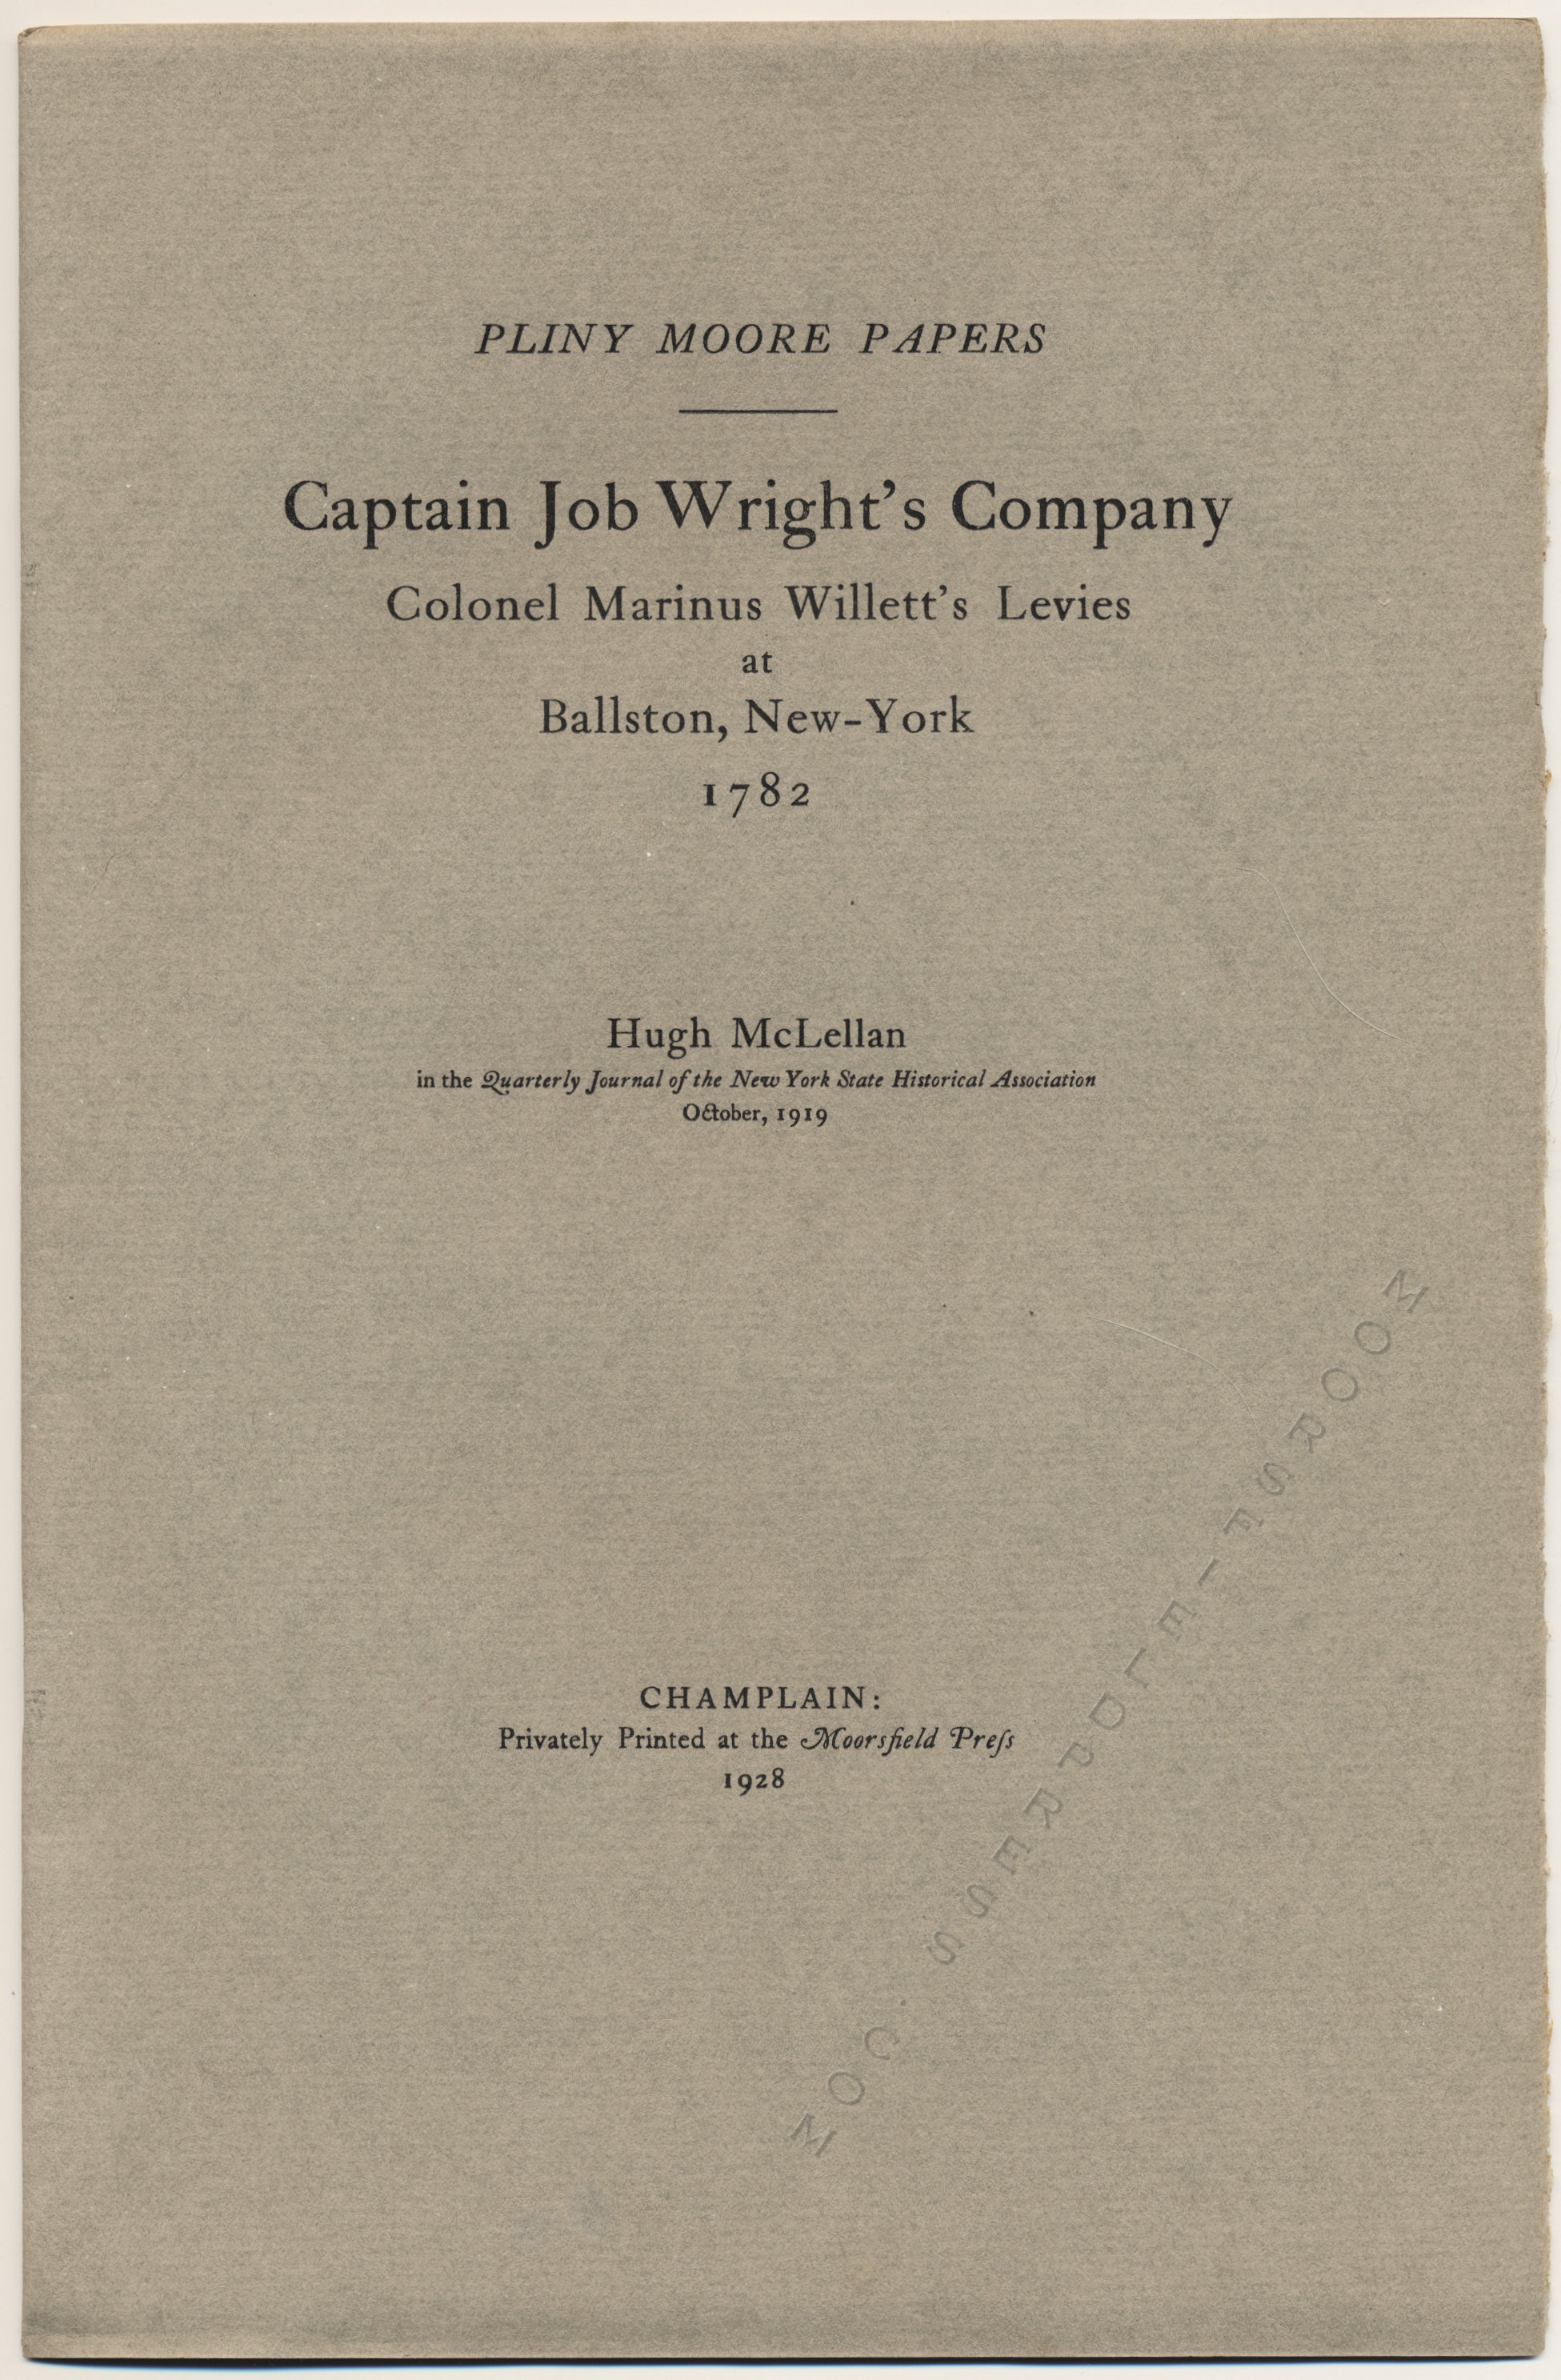 Pliny